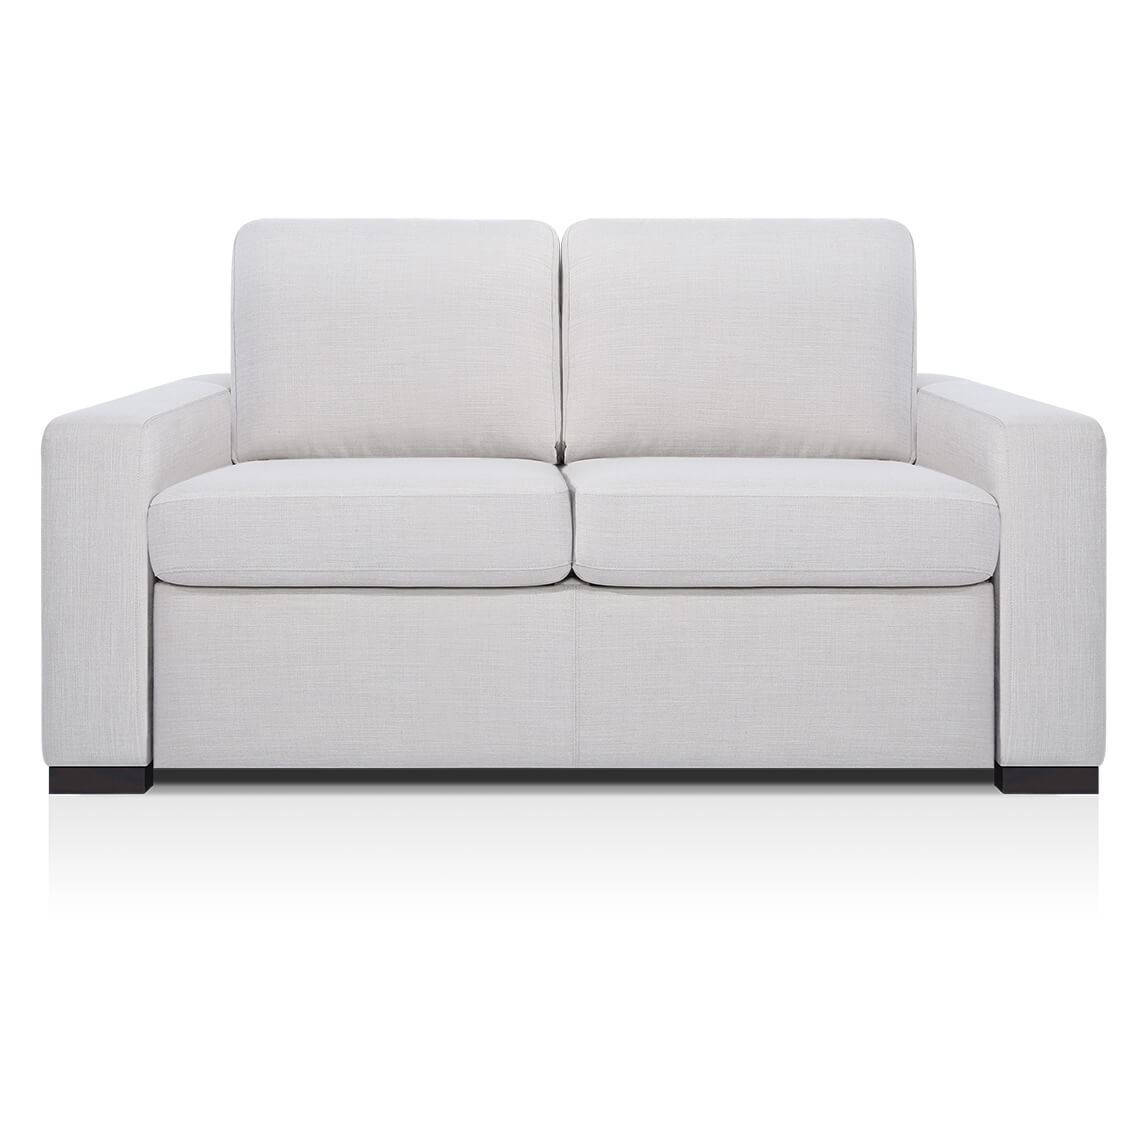 Signature Contemporary Arm 2 Seat Sofabed | Freedom Furniture And intended for Mitchell Gold Martin Sofas (Image 13 of 15)